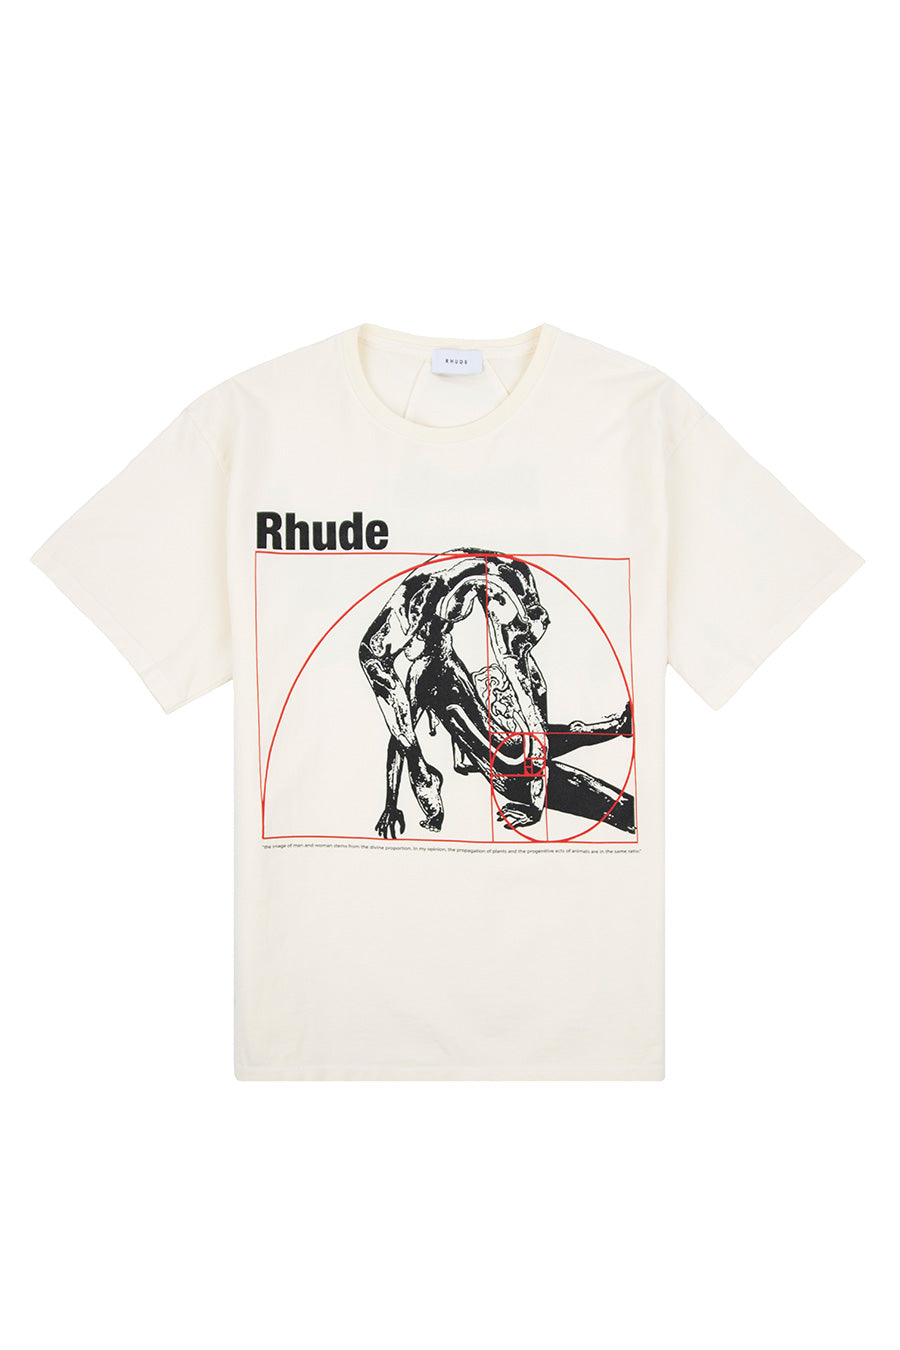 Rhude - White Golden Rule T-Shirt | 1032 SPACE